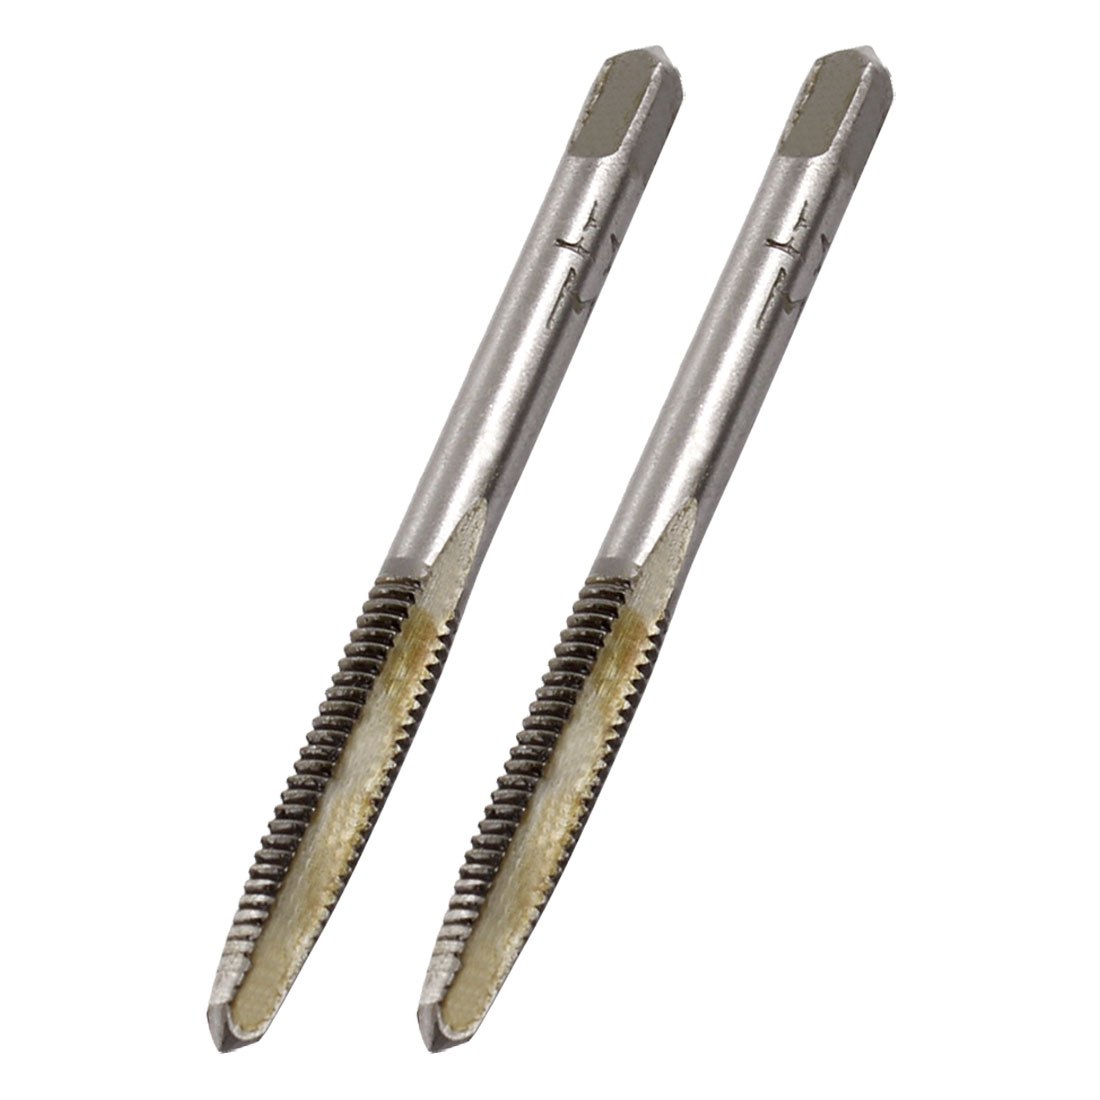 2 Pcs 4mm Cutting Dia 3 Flutes HSS Machine Screw Thread Taper Taps